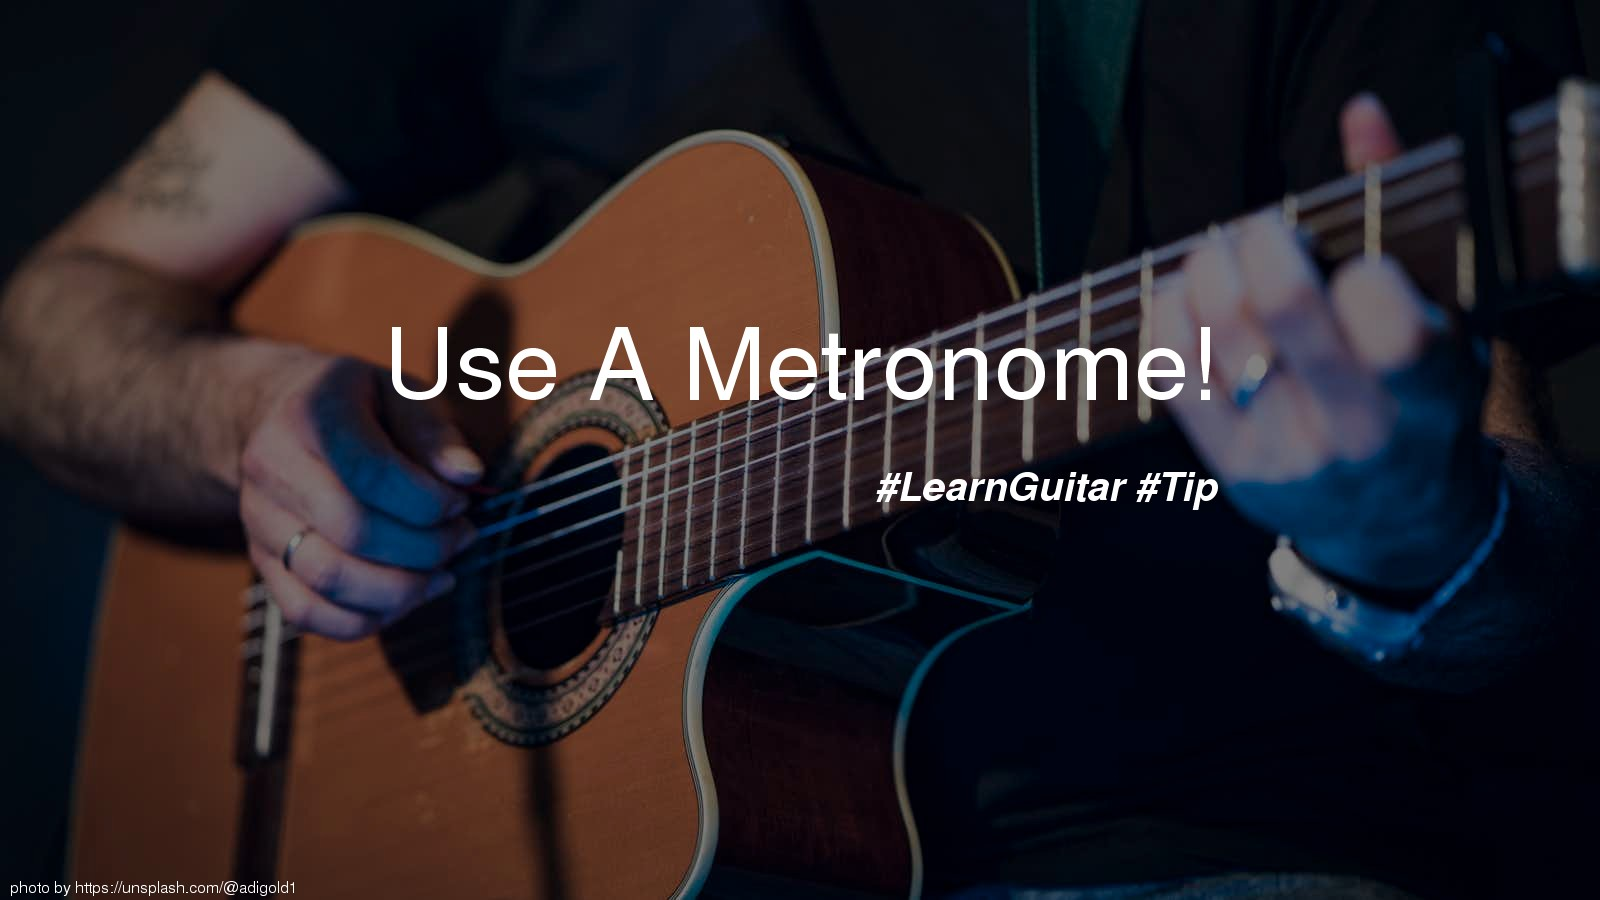 Use A Metronome!